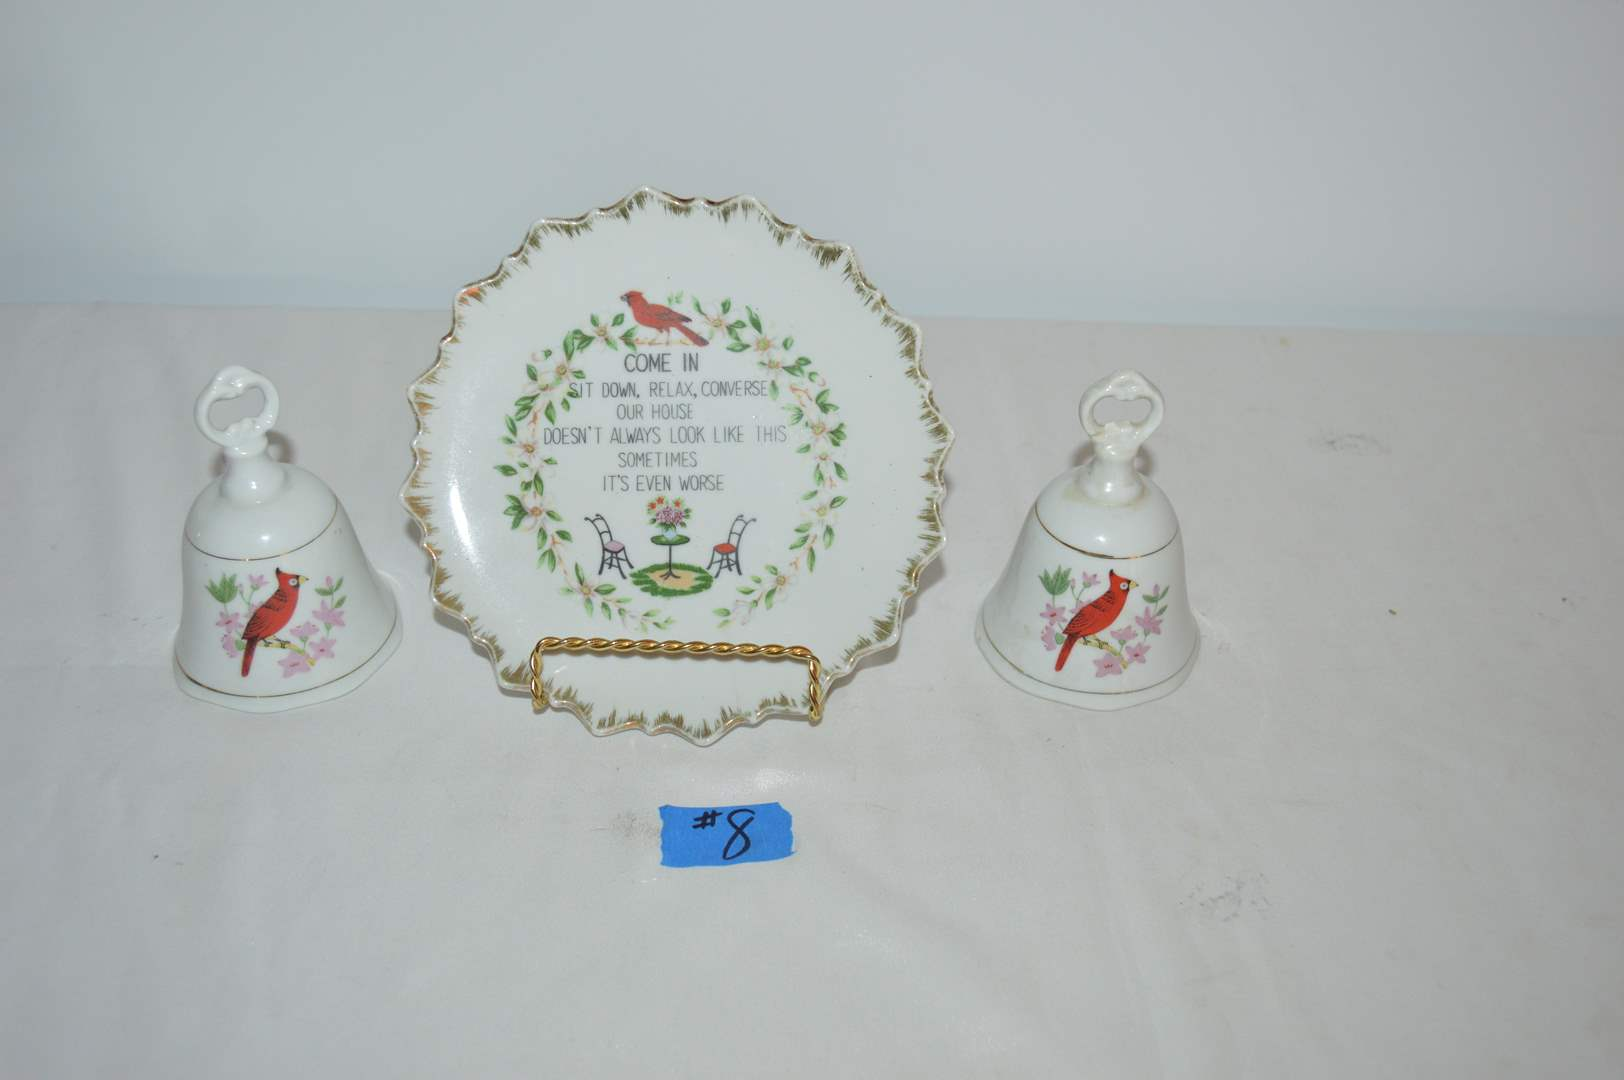 Lot # 8 Decorative plate on stand w/ 2 matching bells - All have cardinals on them (main image)